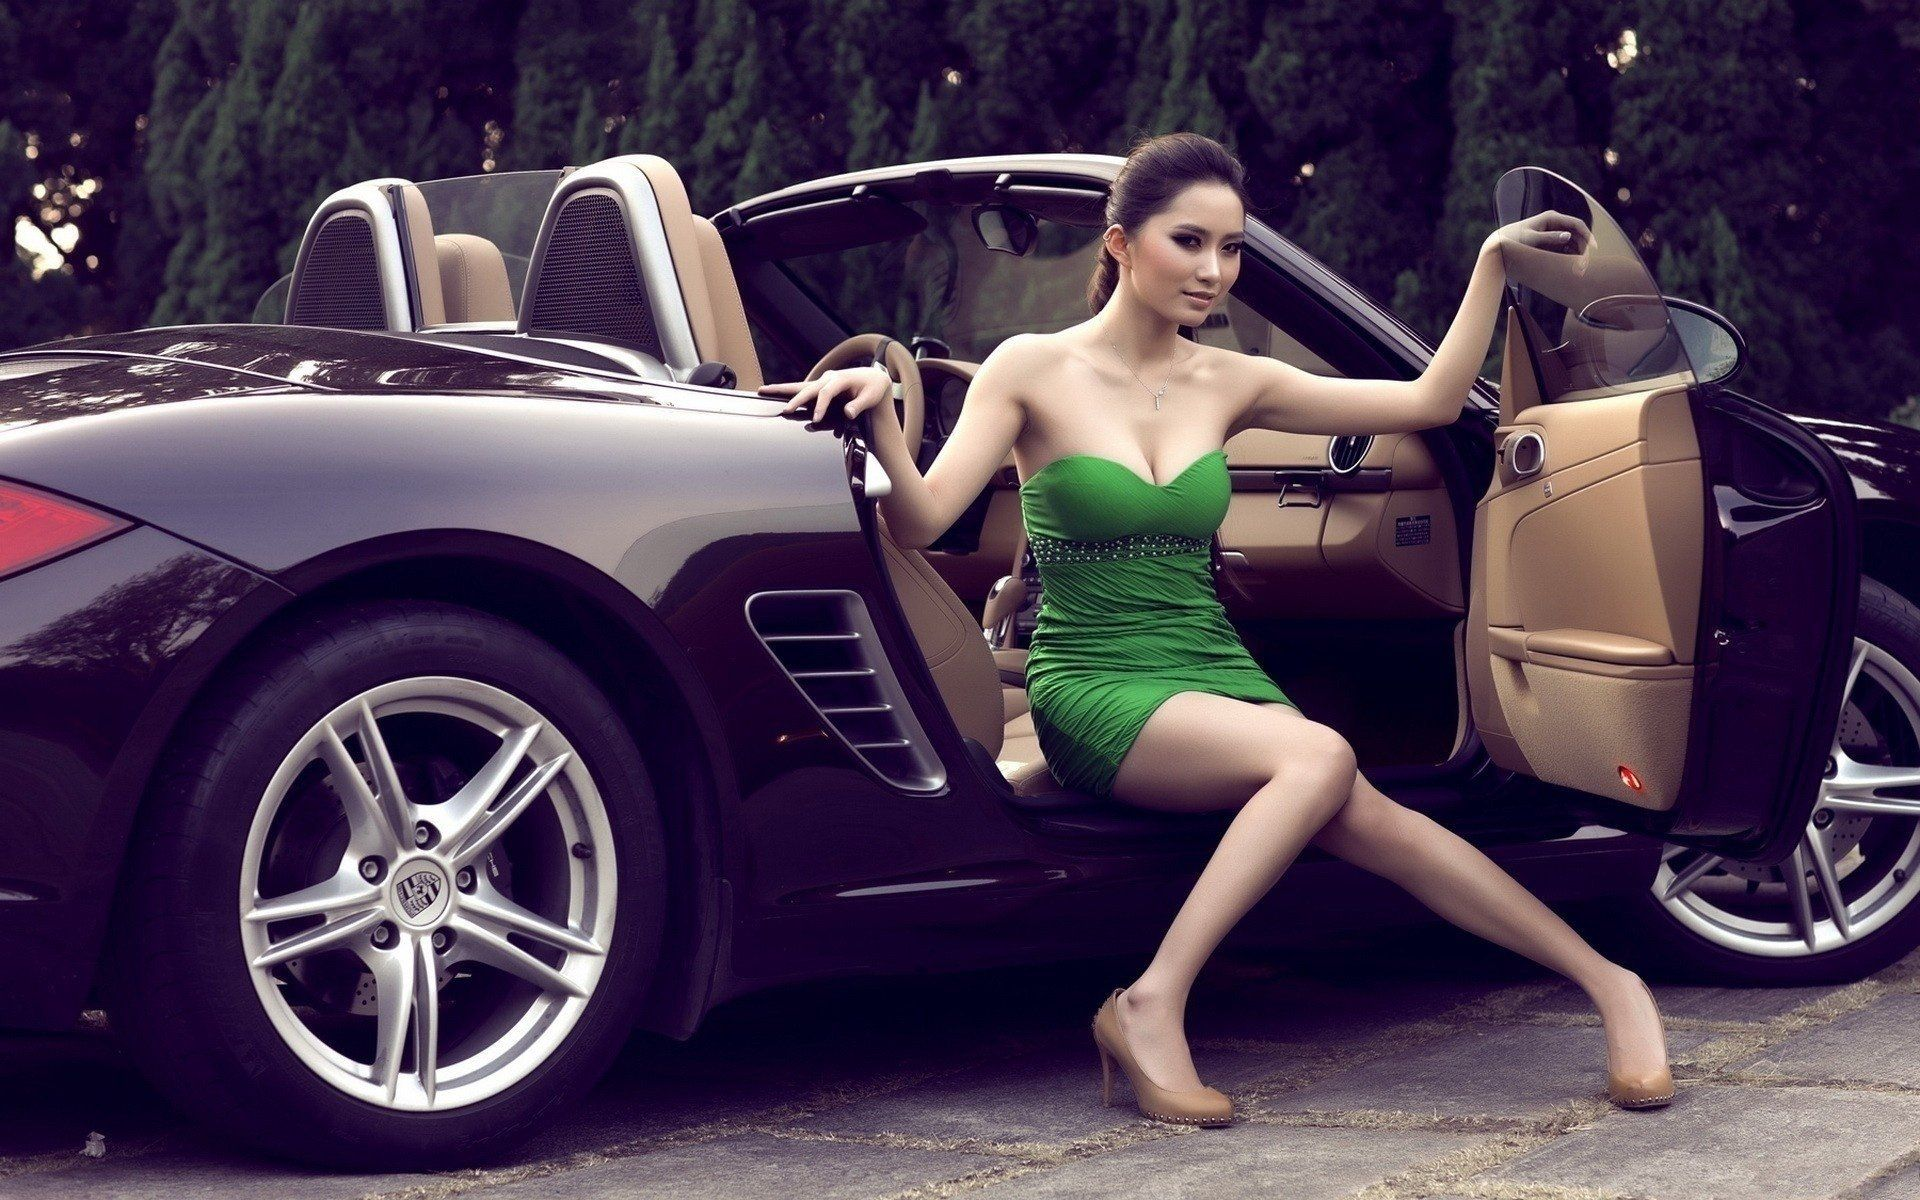 275 girls cars hd wallpapers | backgrounds - wallpaper abyss | epic